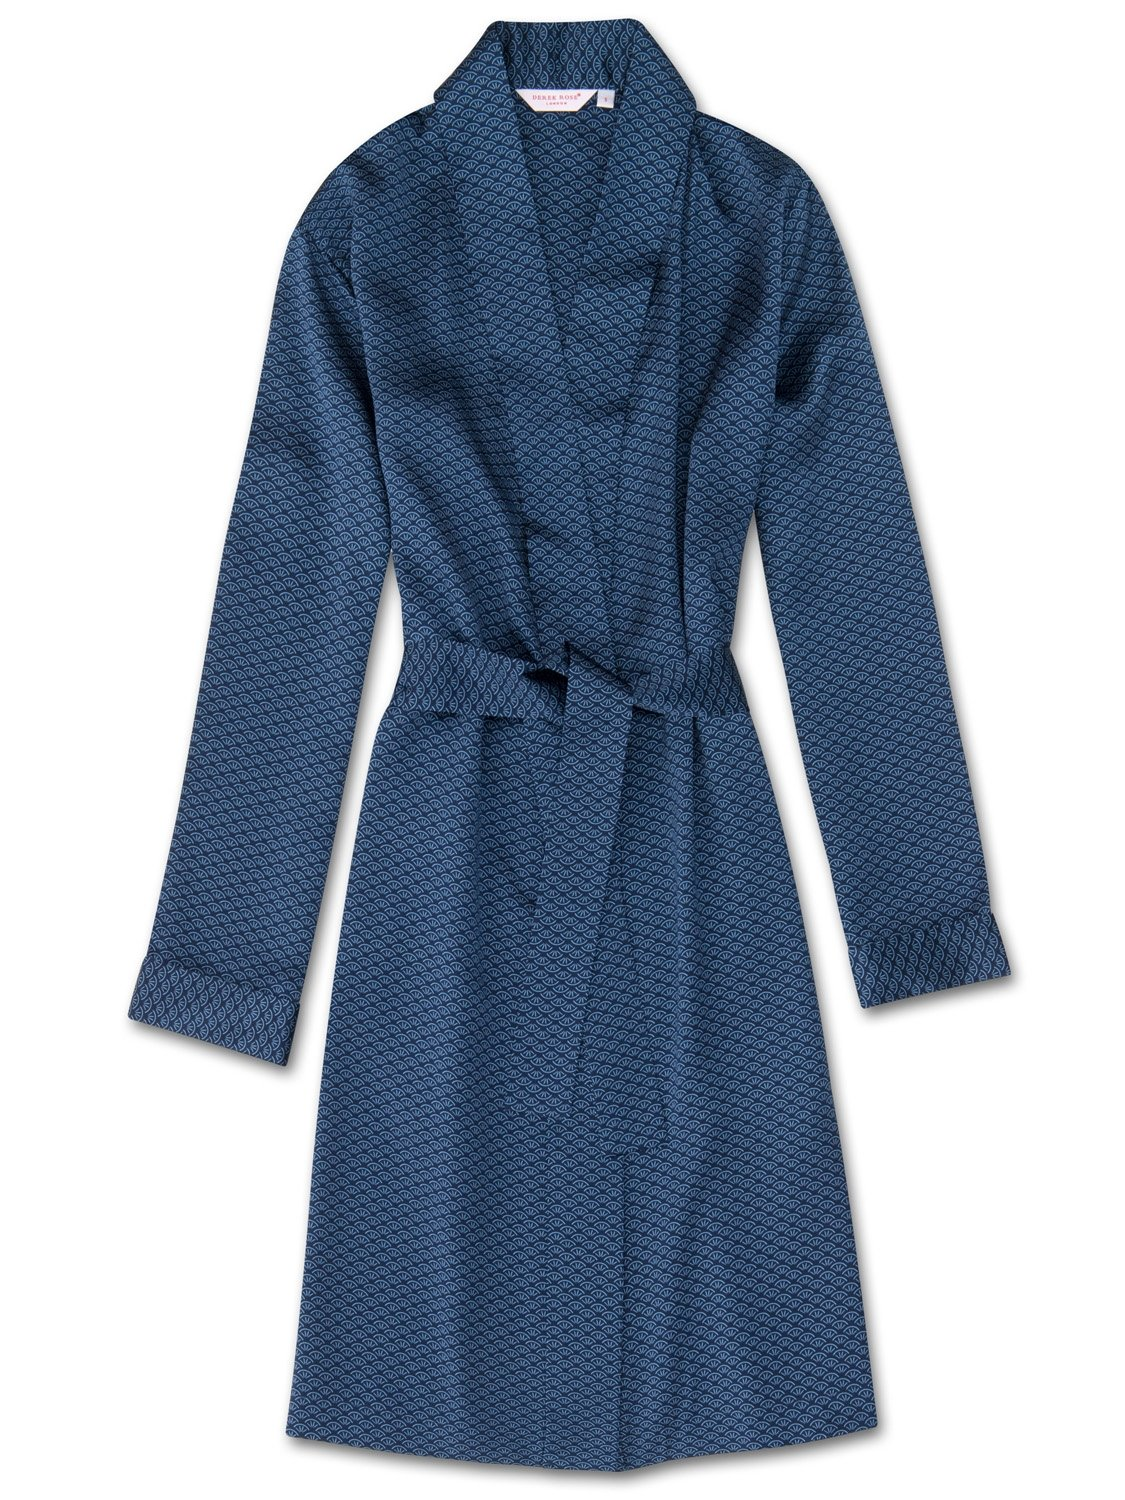 Women's Dressing Gown Brindisi 26 Pure Silk Satin Navy